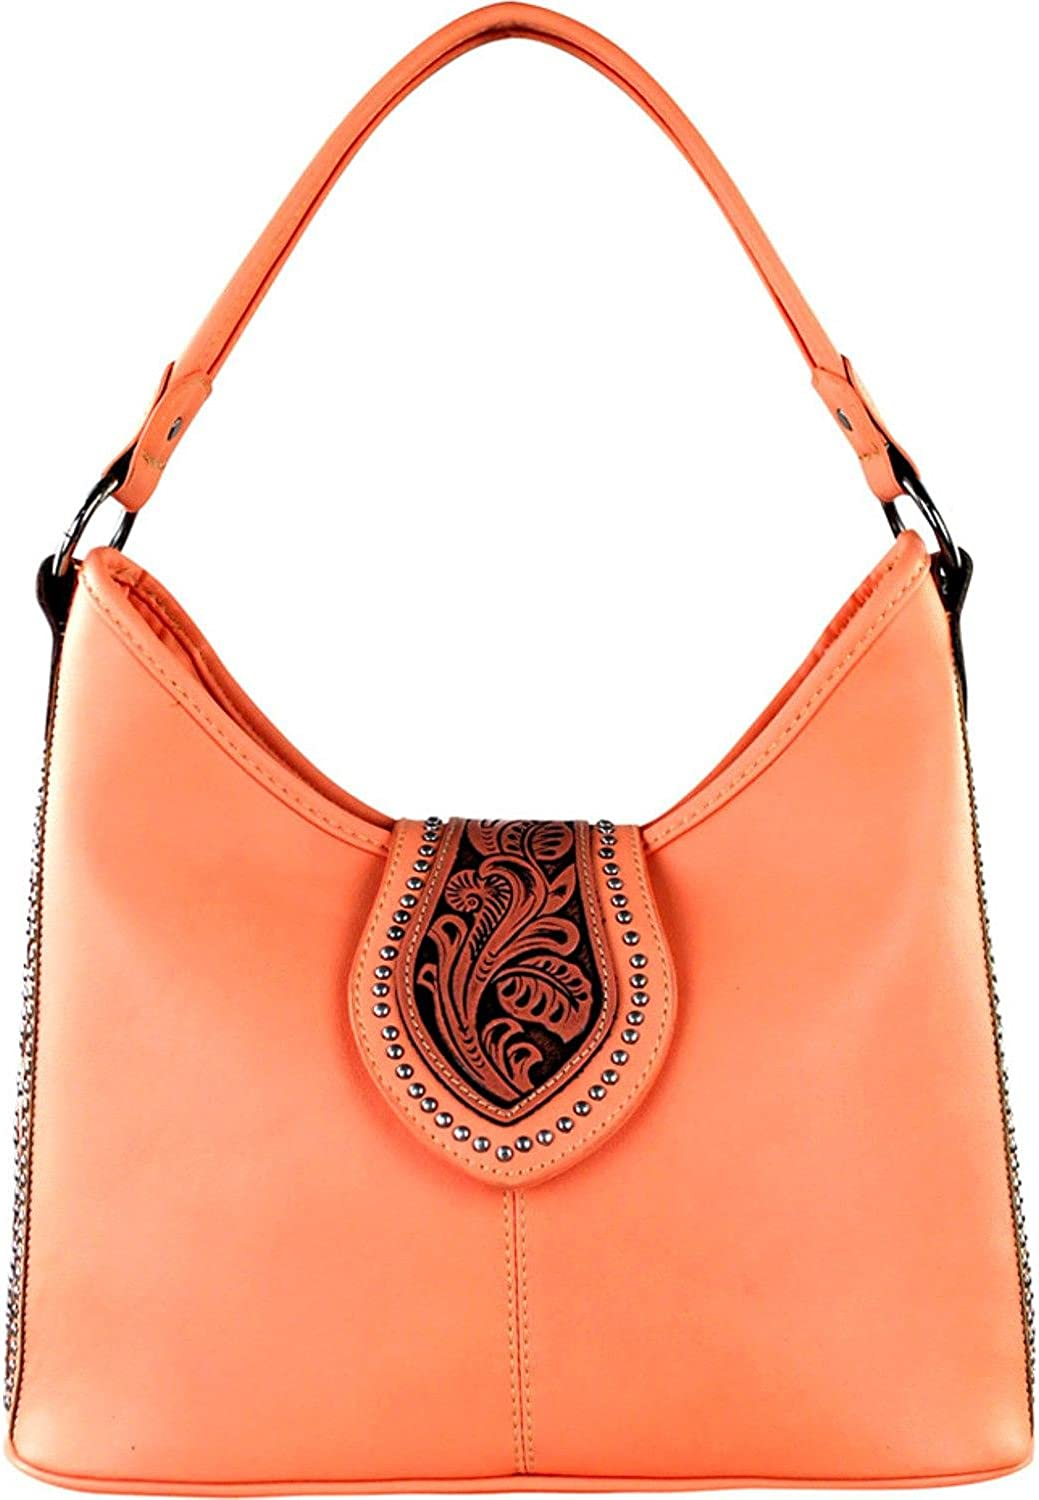 Mw307g-119 Pk Montana West Womens Tooled Conceal Carry Purse